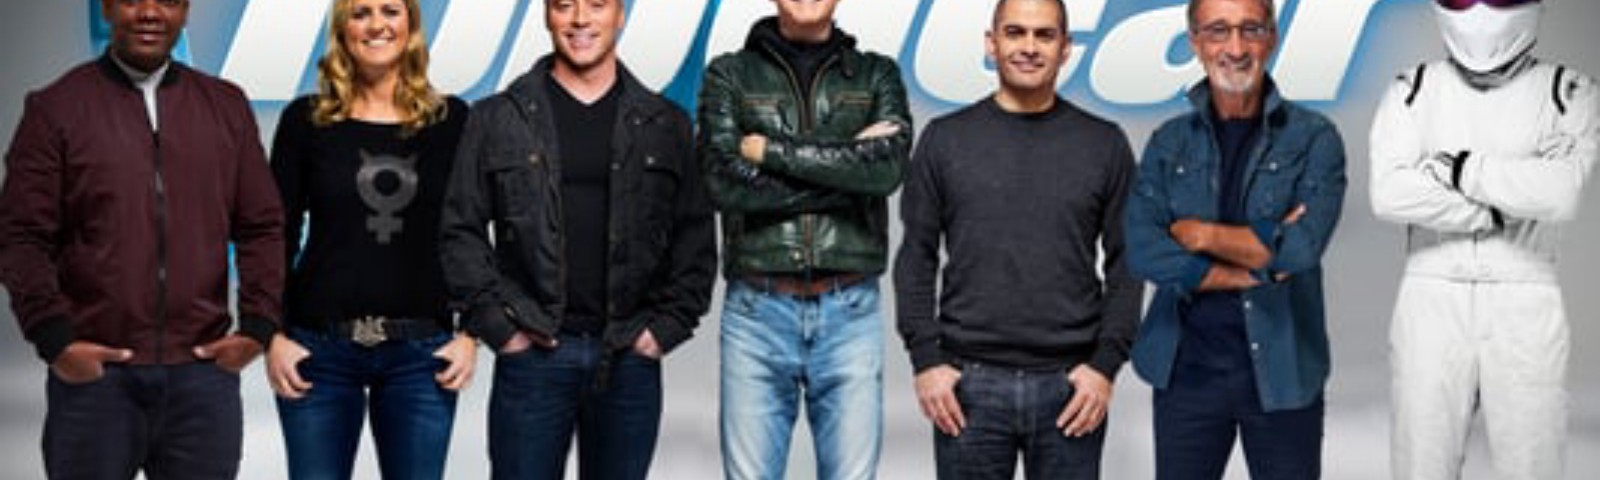 Watch Top Gear Online >> Putlocker Watch Top Gear Season 27 Episode 2 Bbc Two Online